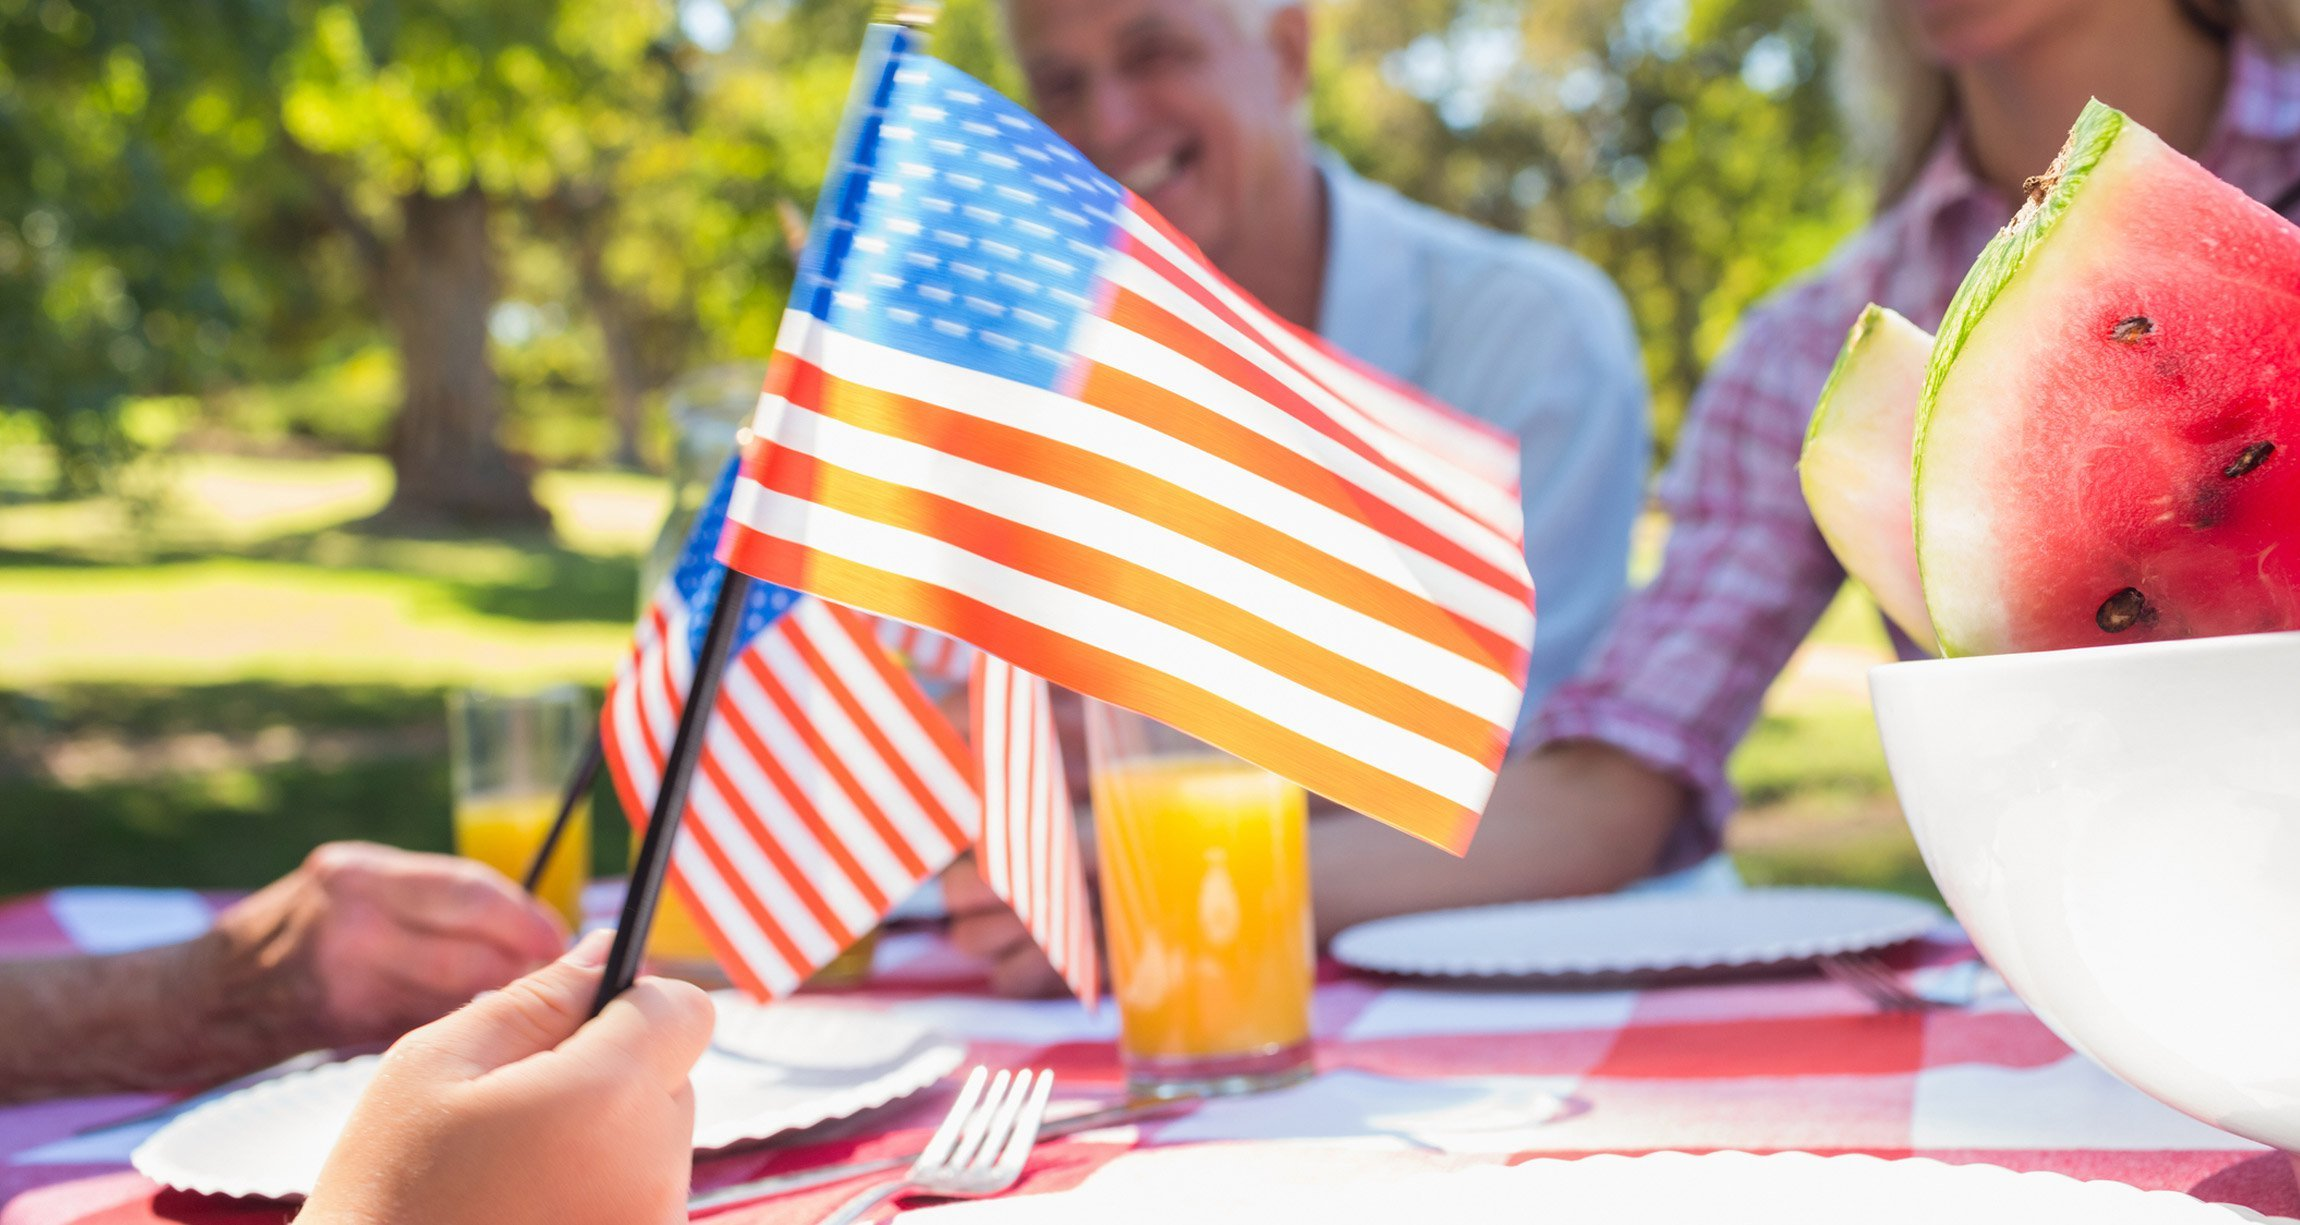 The Ultimate Guide to Hosting or Attending A Healthy, Plant-Powered 4th of July Celebration (Or Other Summer Party)